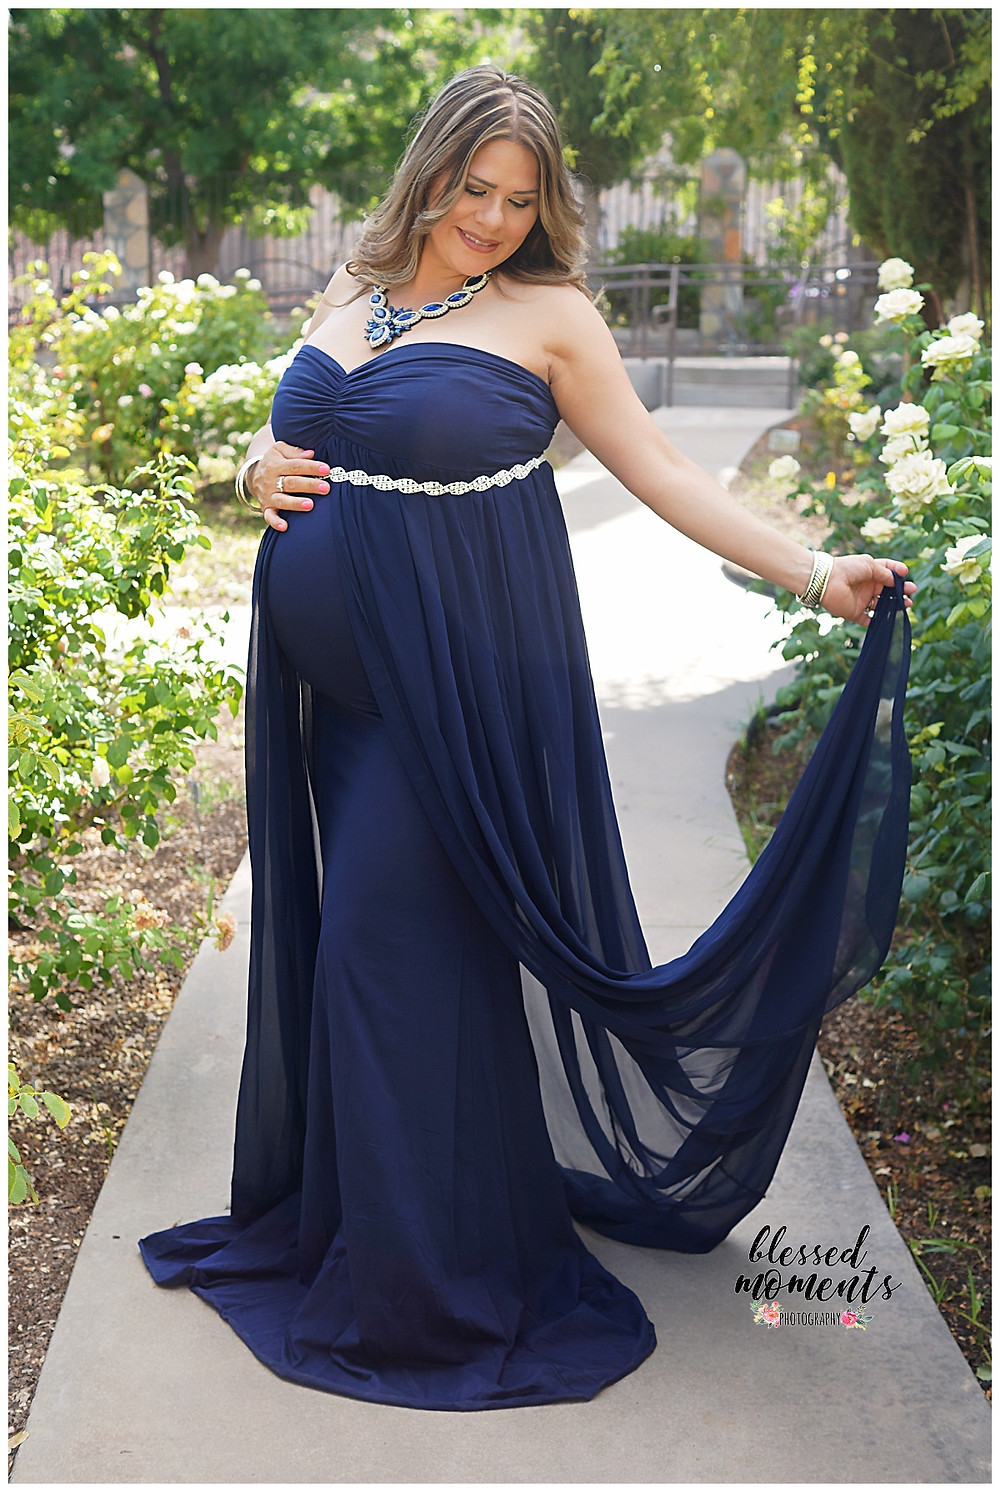 Navy Blue maternity dress at El Paso Rose Garden